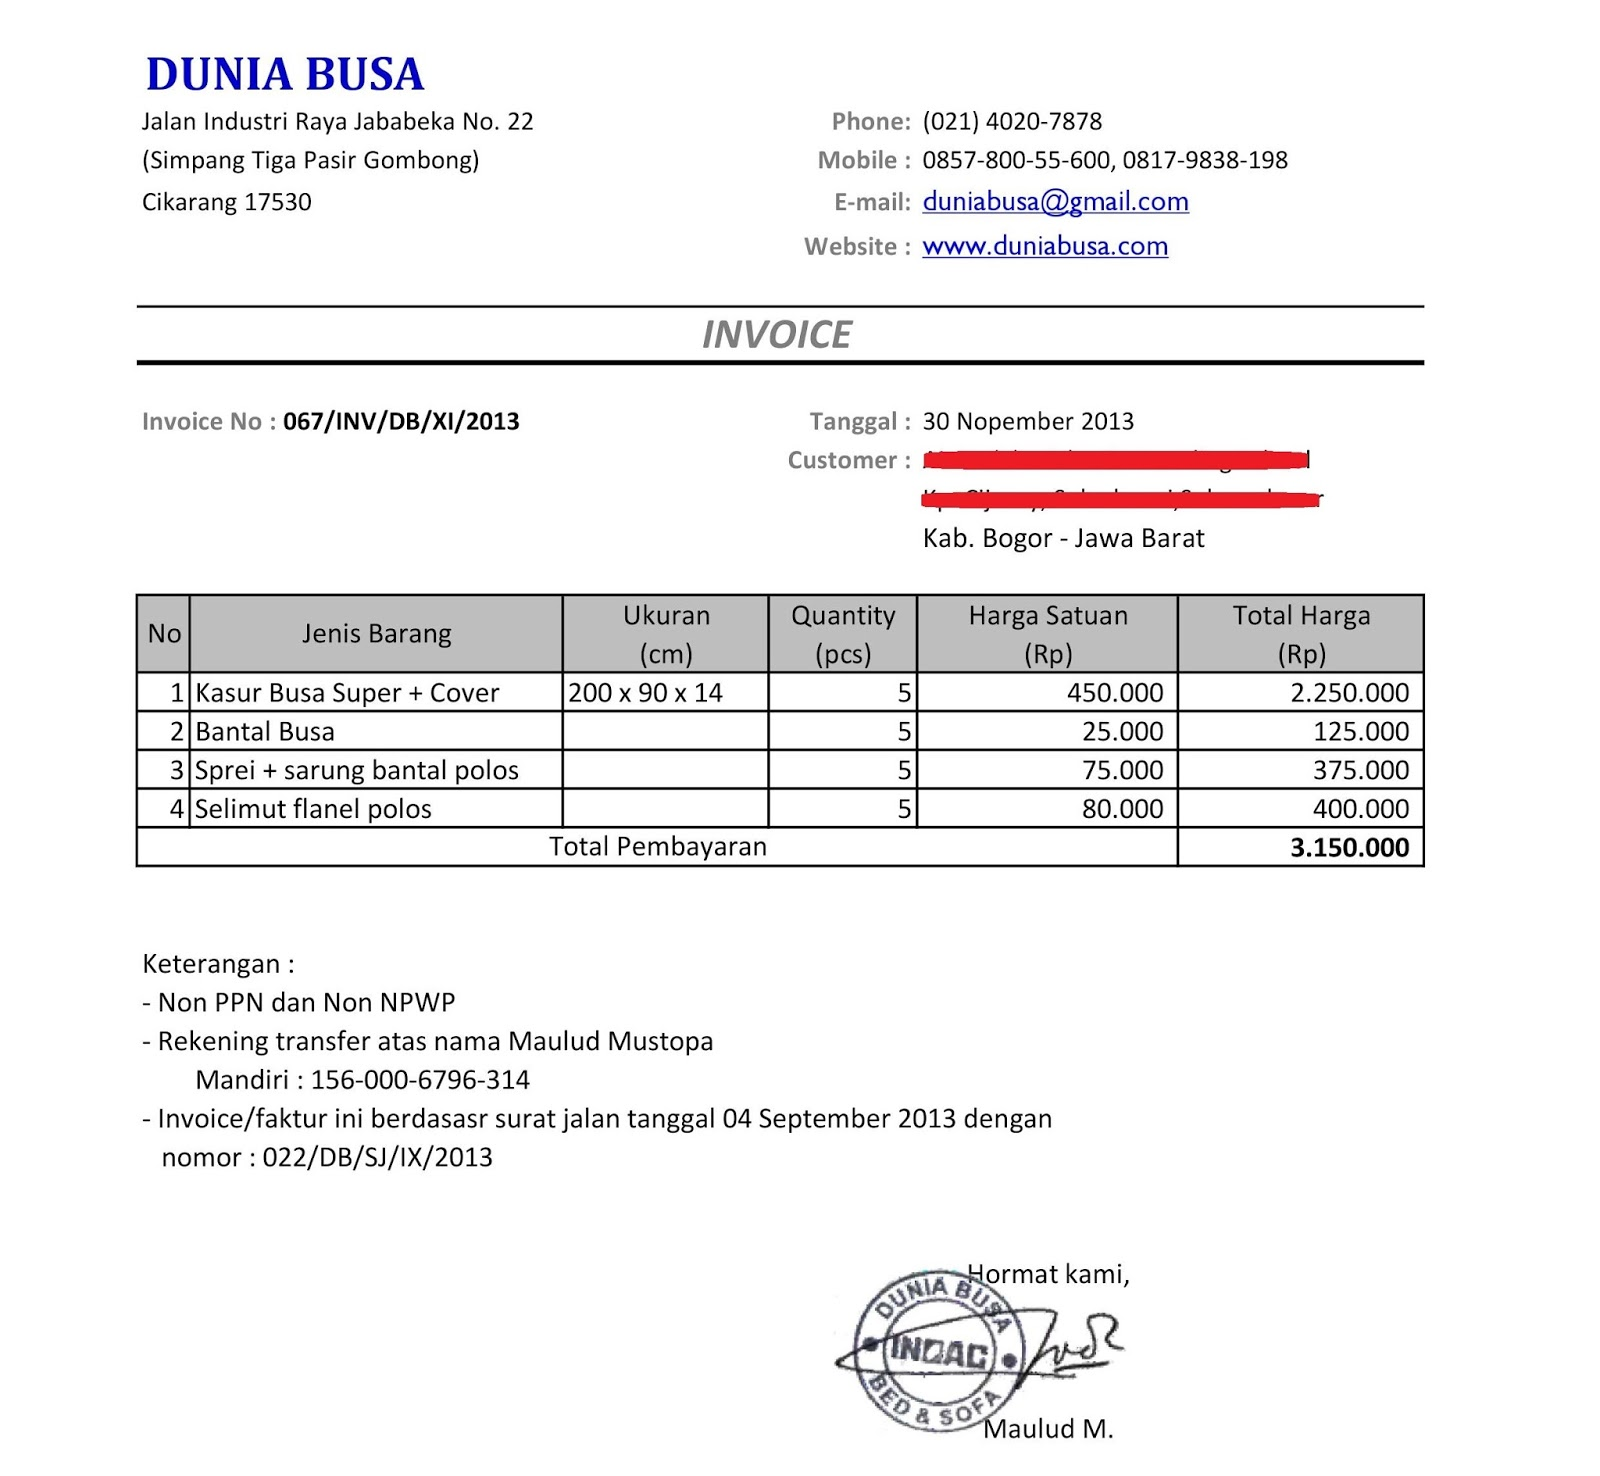 Garygrubbsus  Nice Free Invoice Online  Create Invoice Online  Invoice Template  With Lovely Contoh Format Invoice Atau Surat Tagihan  Brankas Arsip  Free Invoice Online With Agreeable Invoicing And Billing Also It Invoice In Addition Catering Invoice Template Excel And Invoice Loan As Well As Invoices To Go App Additionally Car Dealership Invoice Price From Sklepco With Garygrubbsus  Lovely Free Invoice Online  Create Invoice Online  Invoice Template  With Agreeable Contoh Format Invoice Atau Surat Tagihan  Brankas Arsip  Free Invoice Online And Nice Invoicing And Billing Also It Invoice In Addition Catering Invoice Template Excel From Sklepco